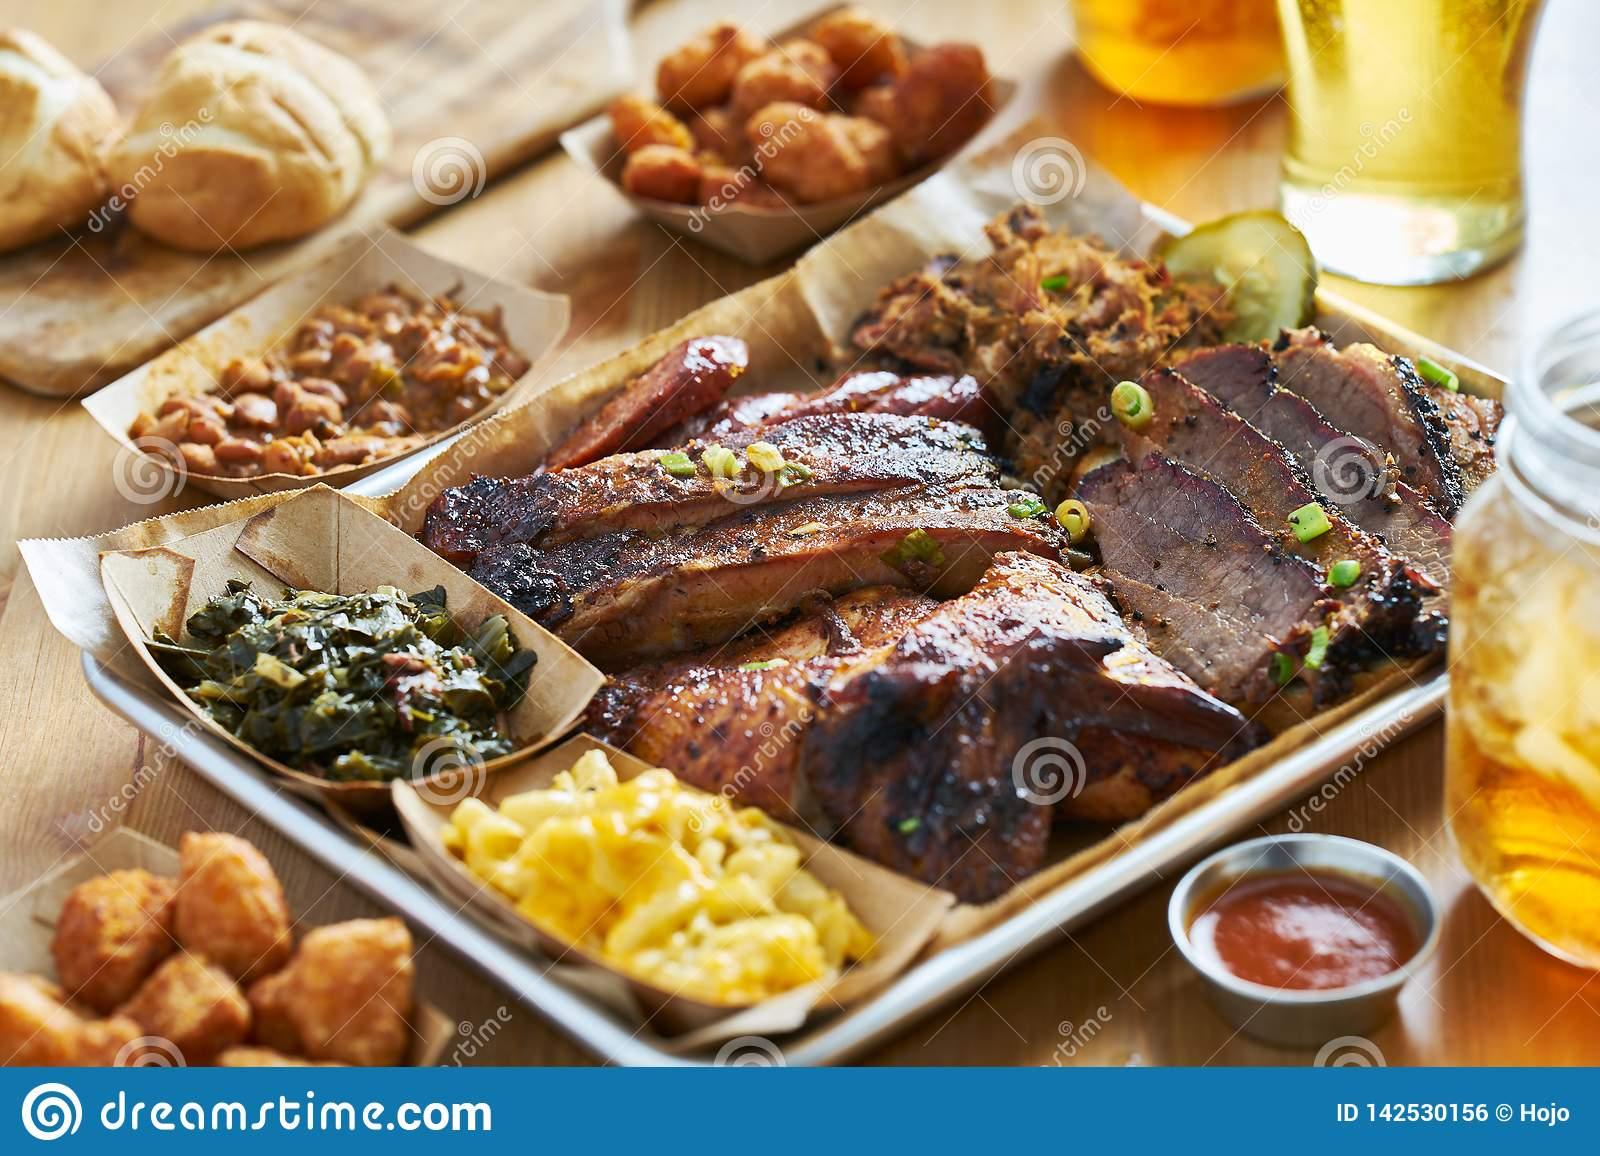 790 Texas Bbq Photos Free Royalty Free Stock Photos From Dreamstime